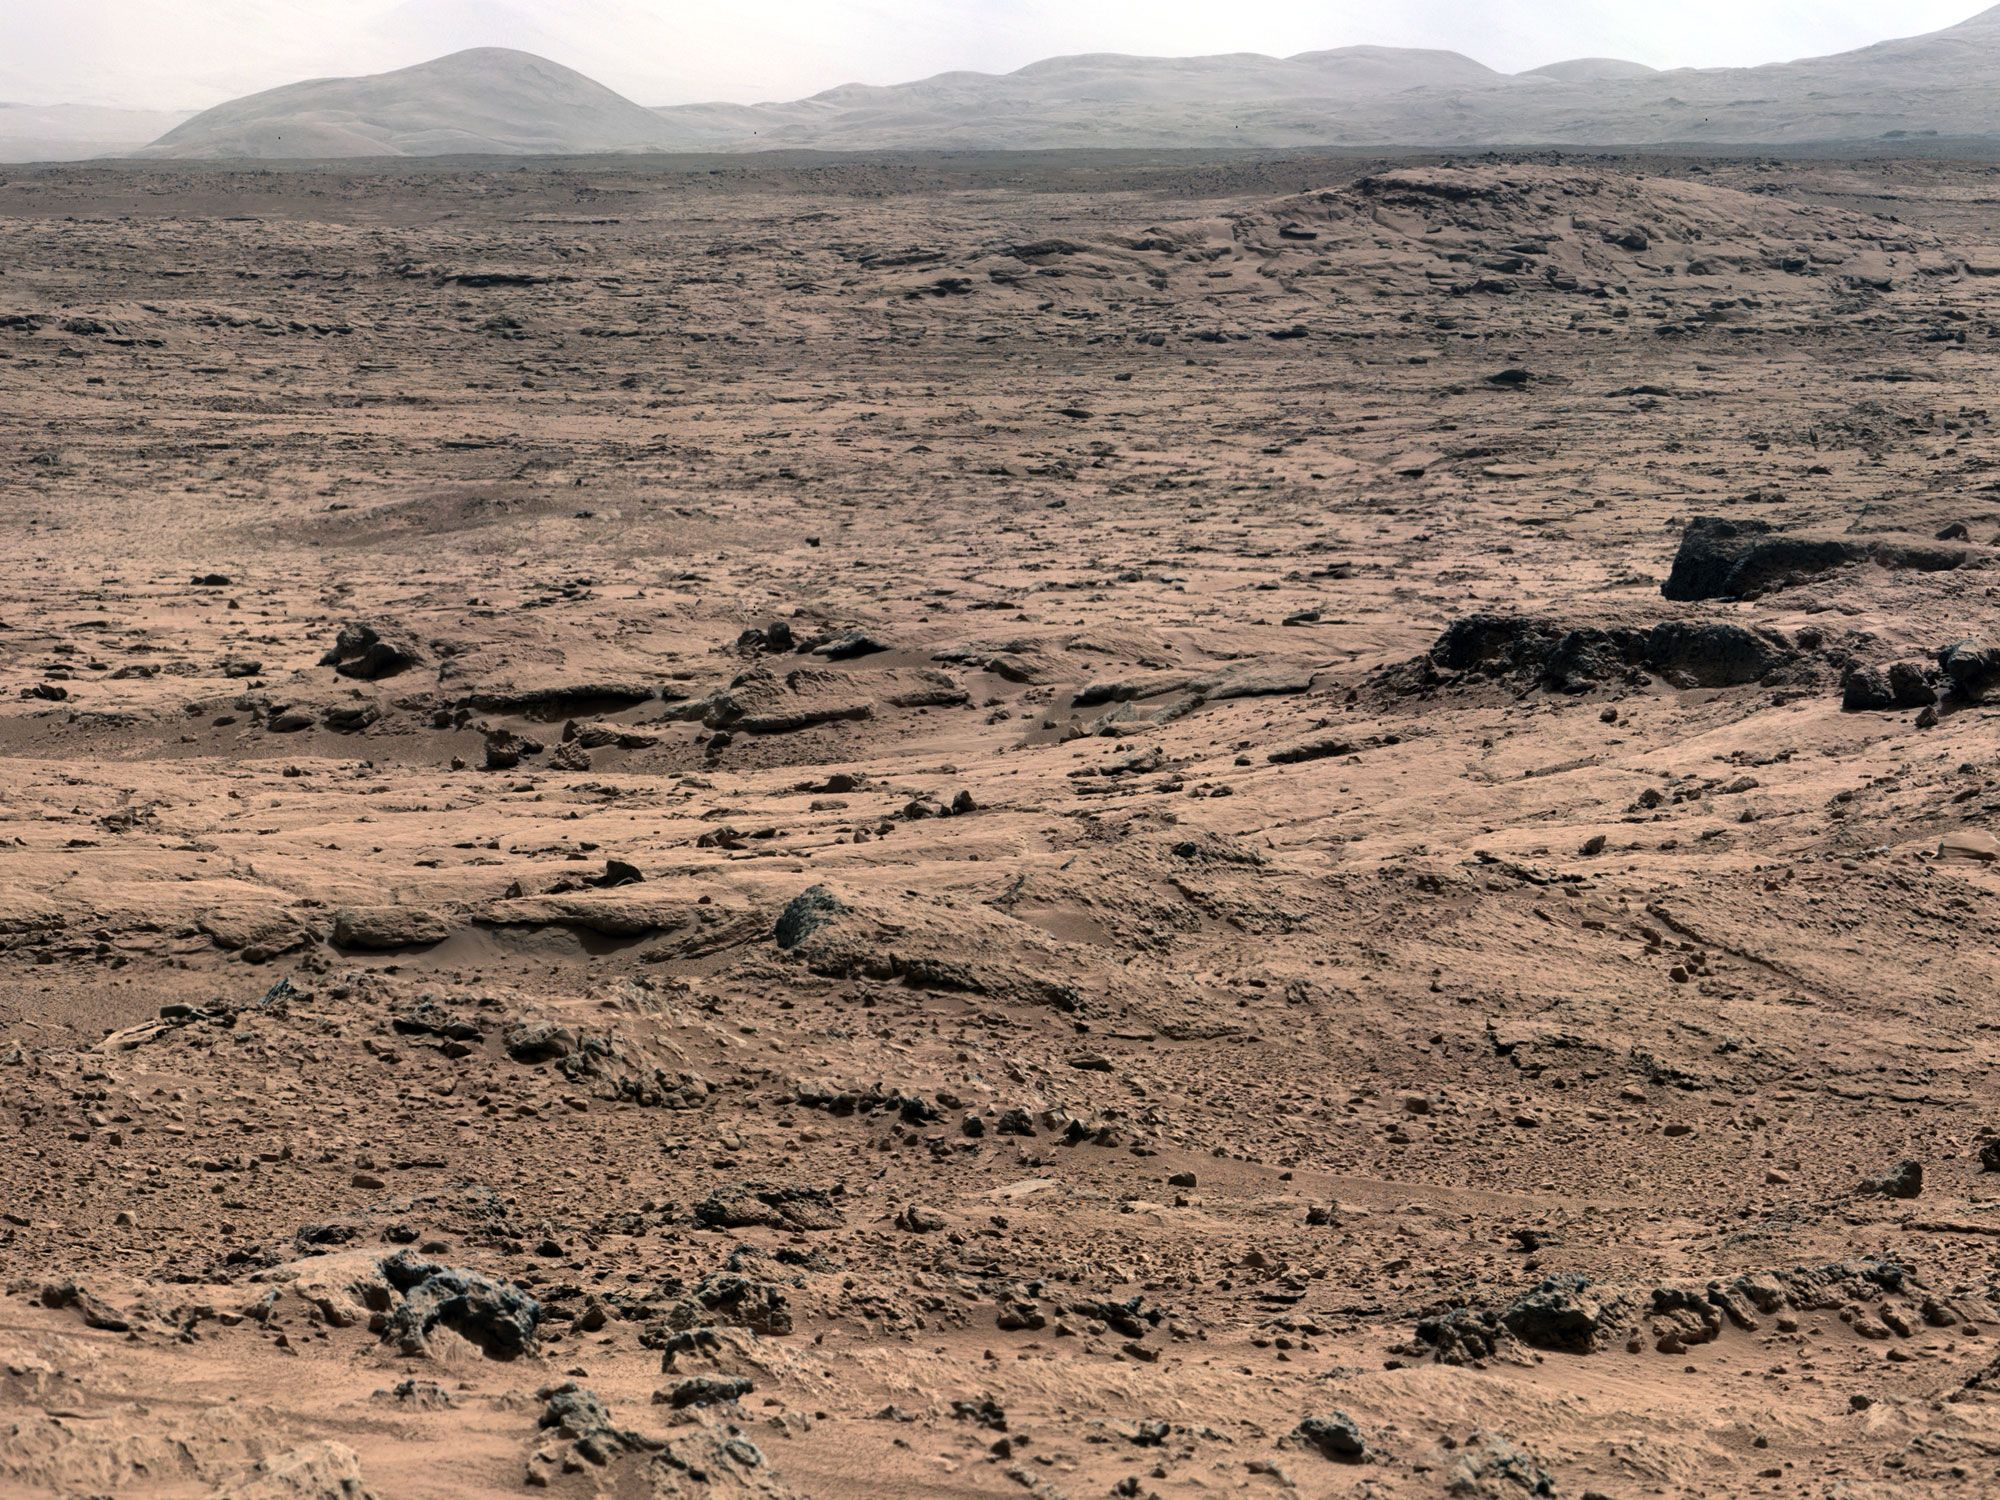 One Year After Launch Curiosity Rover Busy On Mars Curiosity Mars Curiosity Rover Mars Rover